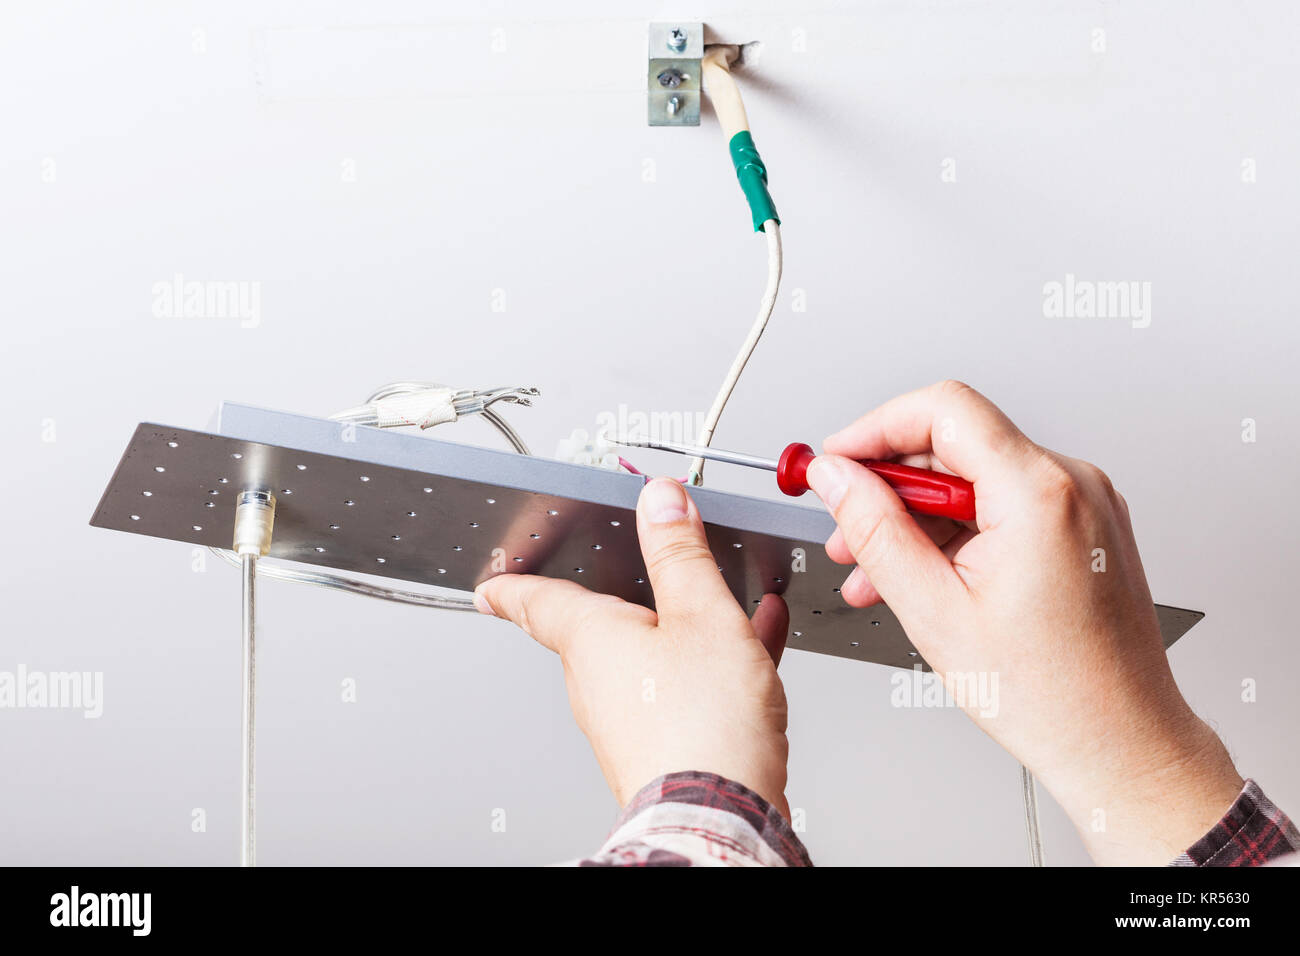 Wiring A Ceiling Pendant on ceiling panels, ceiling glass, ceiling tools, ceiling furnace, ceiling pipes, ceiling suspension, ceiling ventilation, ceiling parts, ceiling interior, ceiling blue, ceiling drywall, ceiling brackets, ceiling filter, ceiling components, ceiling mirrors, ceiling walls, ceiling lights, ceiling heater, ceiling bulbs, ceiling dimensions,